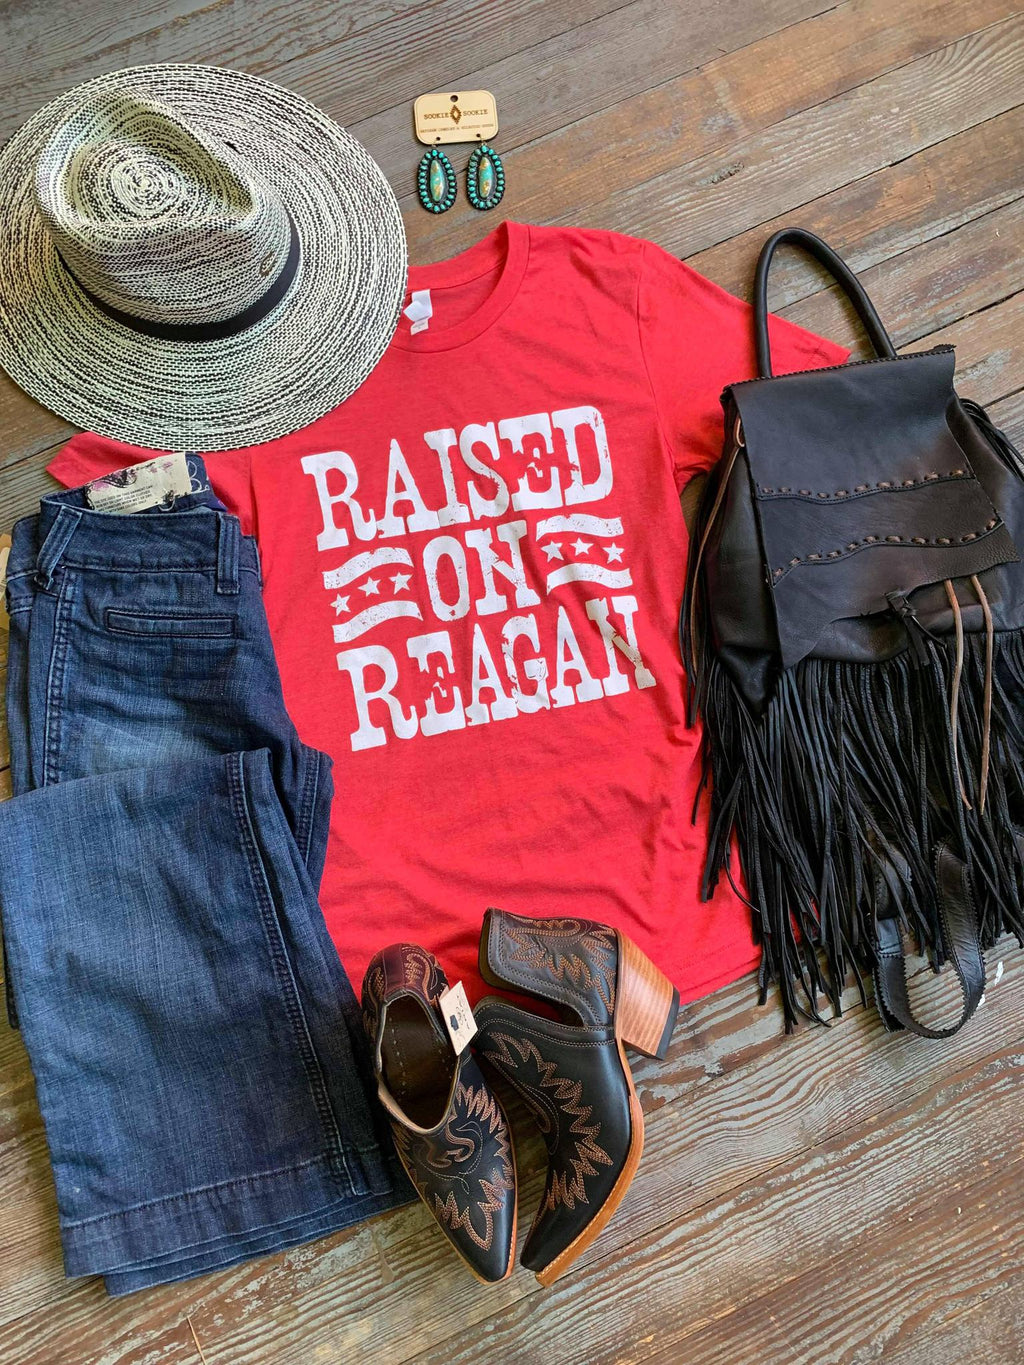 Raised on Reagan Tshirt